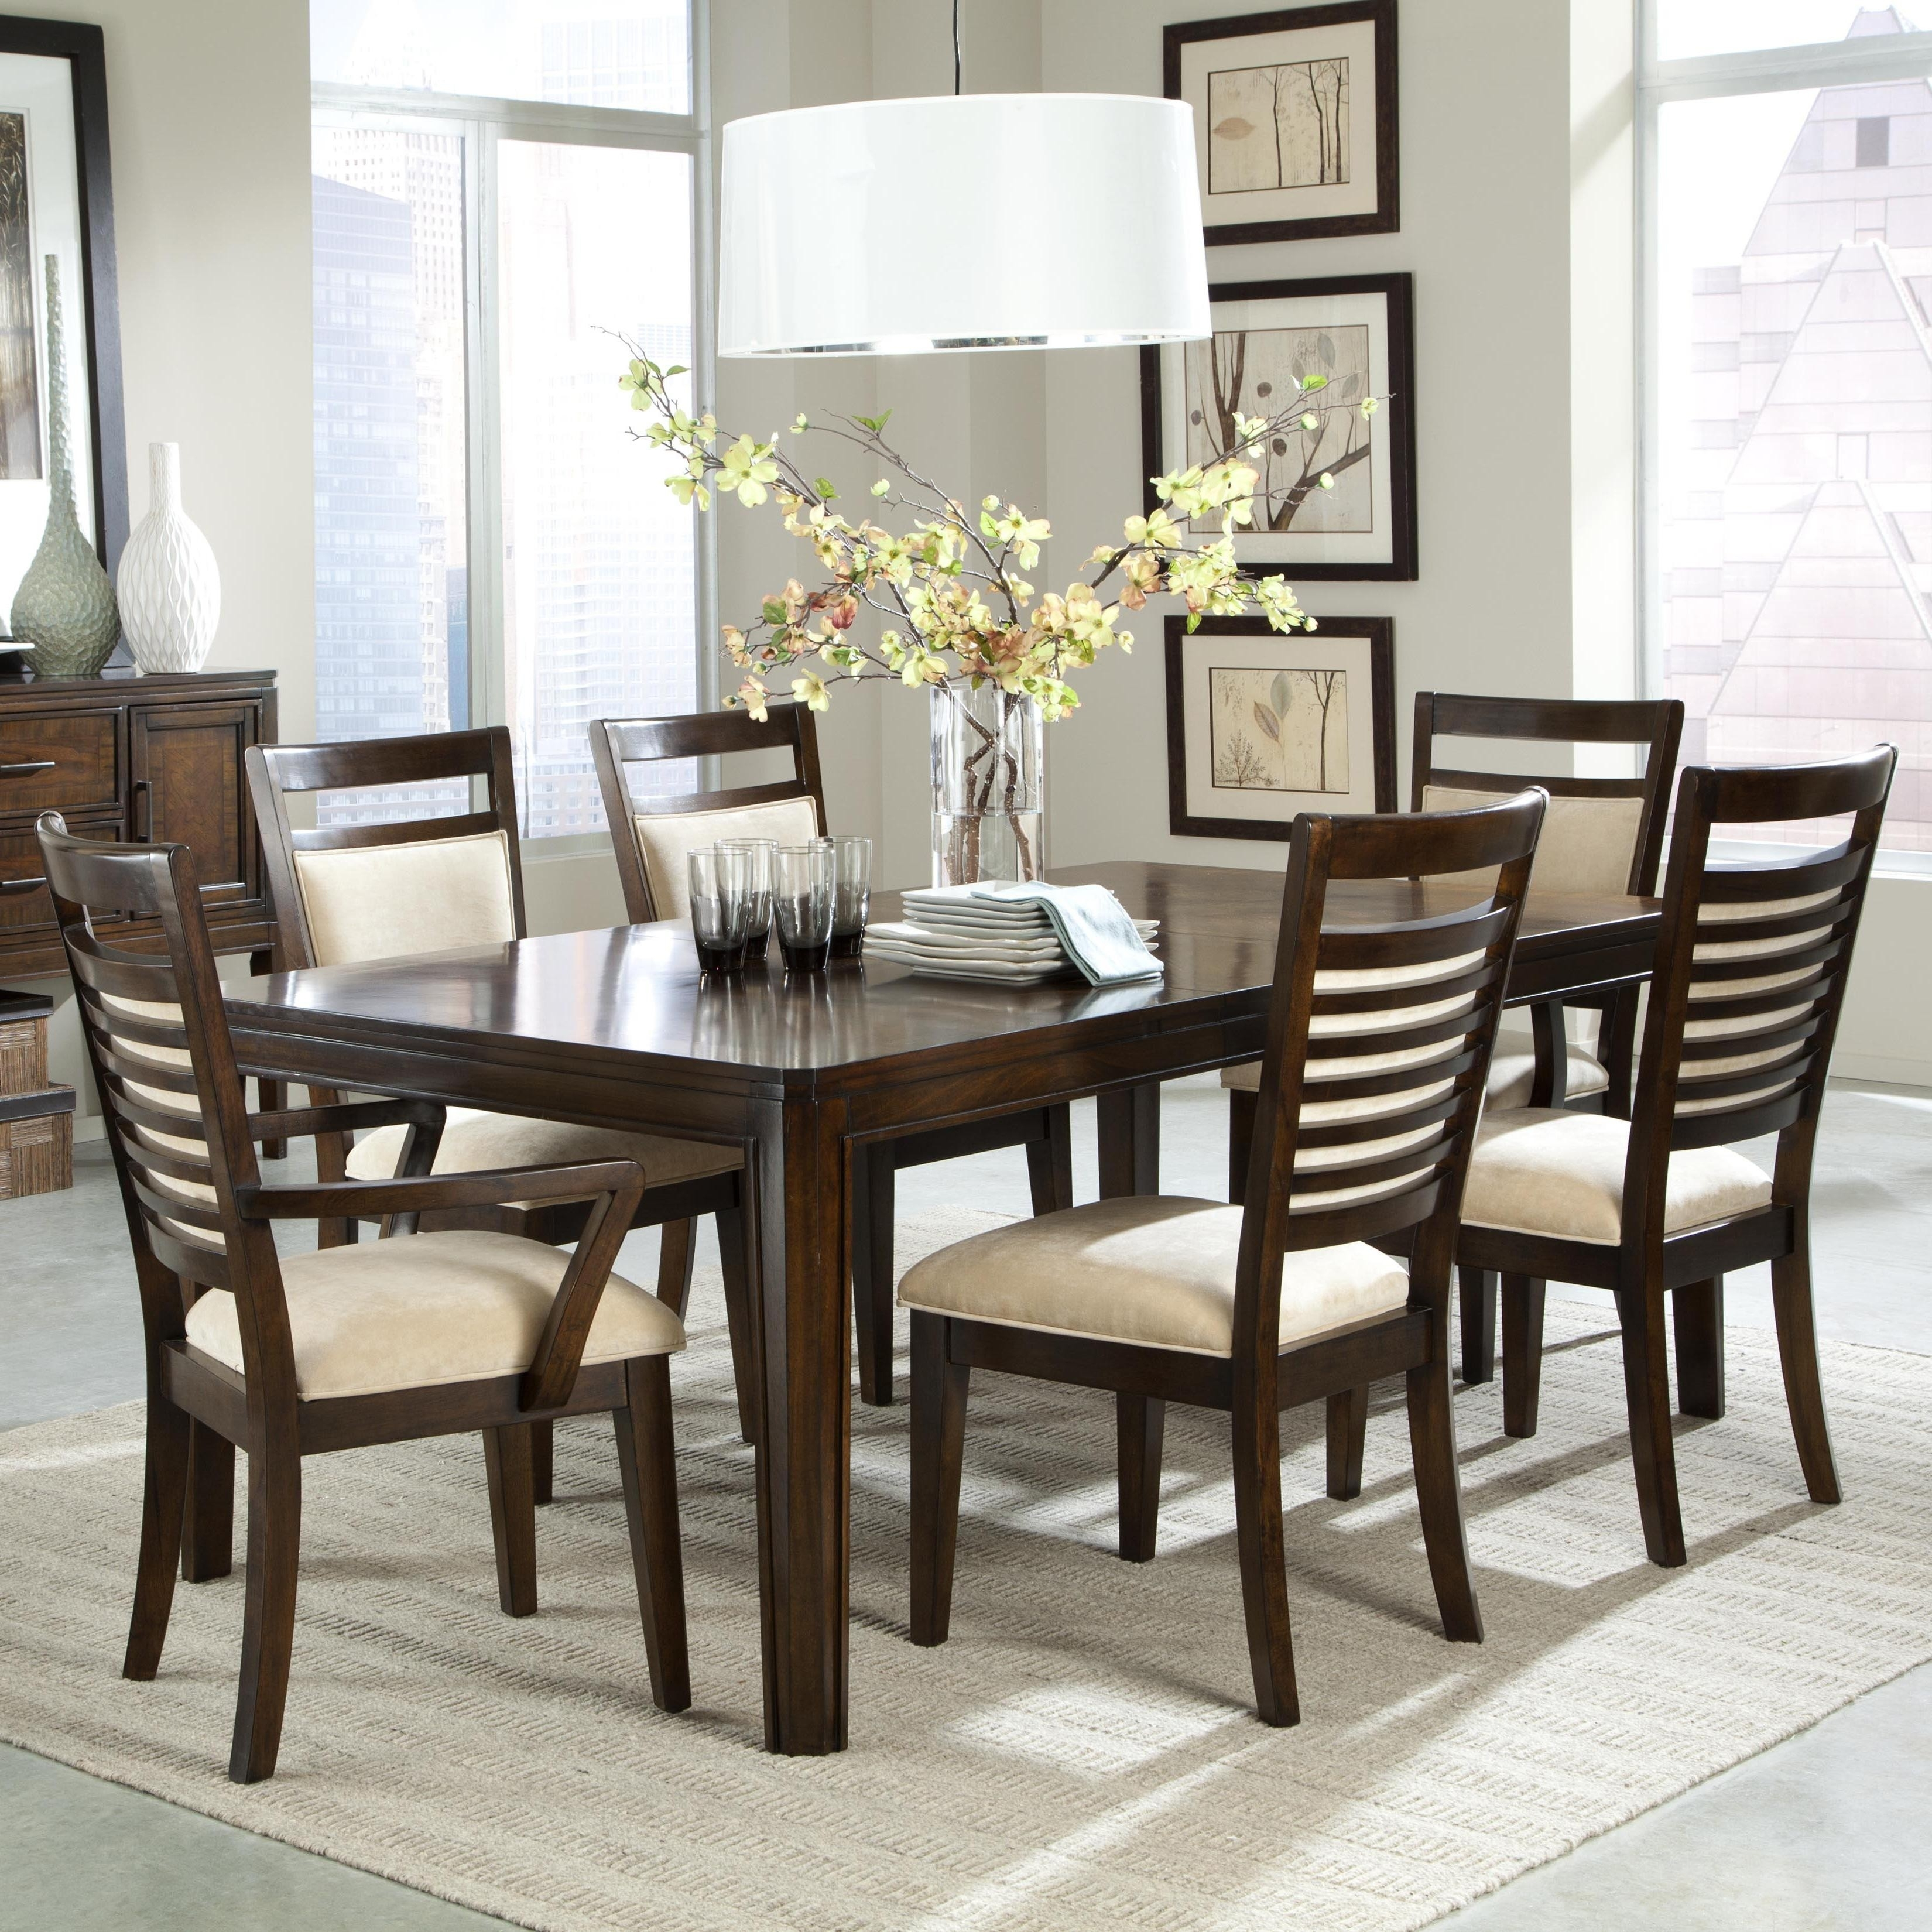 Dining Table Upholstered Chairs Unique The Pemberleigh Round Table With Most Recent Jaxon Grey 6 Piece Rectangle Extension Dining Sets With Bench & Uph Chairs (Image 4 of 20)